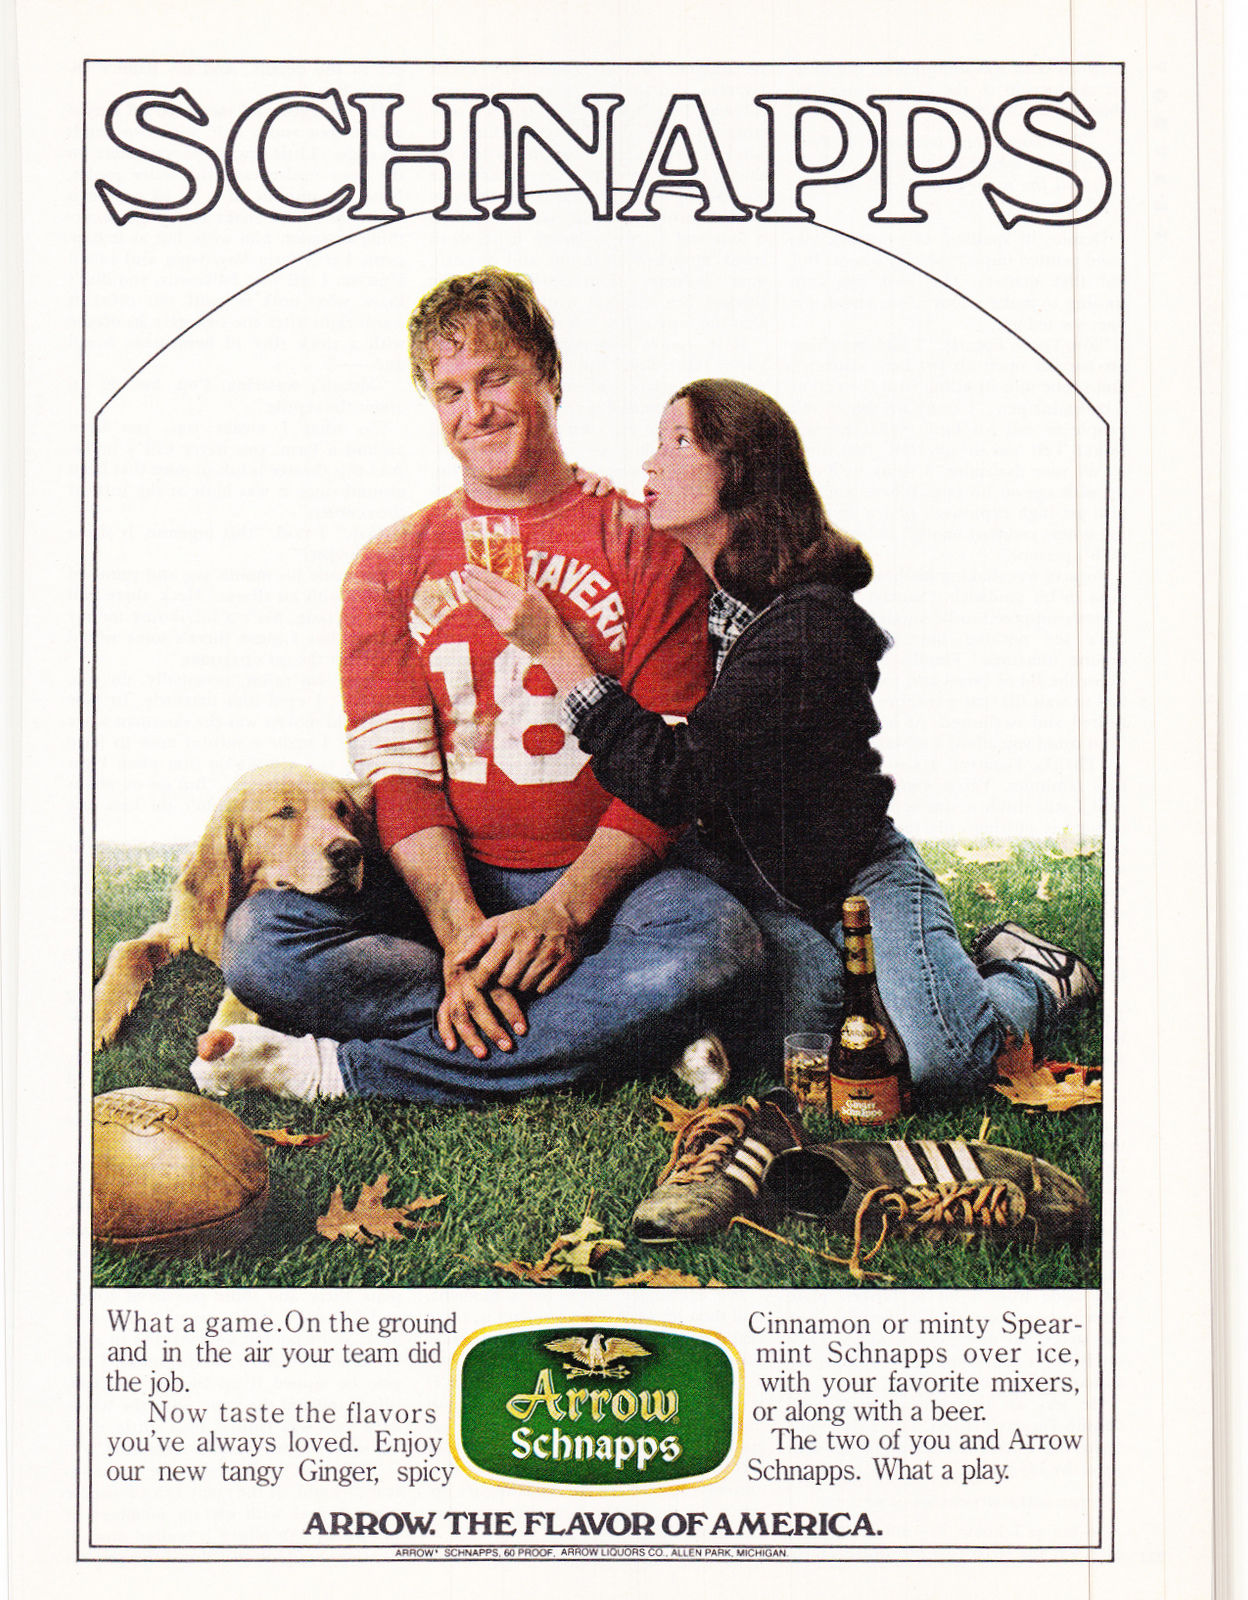 Look closely – that is, in fact, a very young John Goodman in this 1980 ad for Arrow Schnapps.